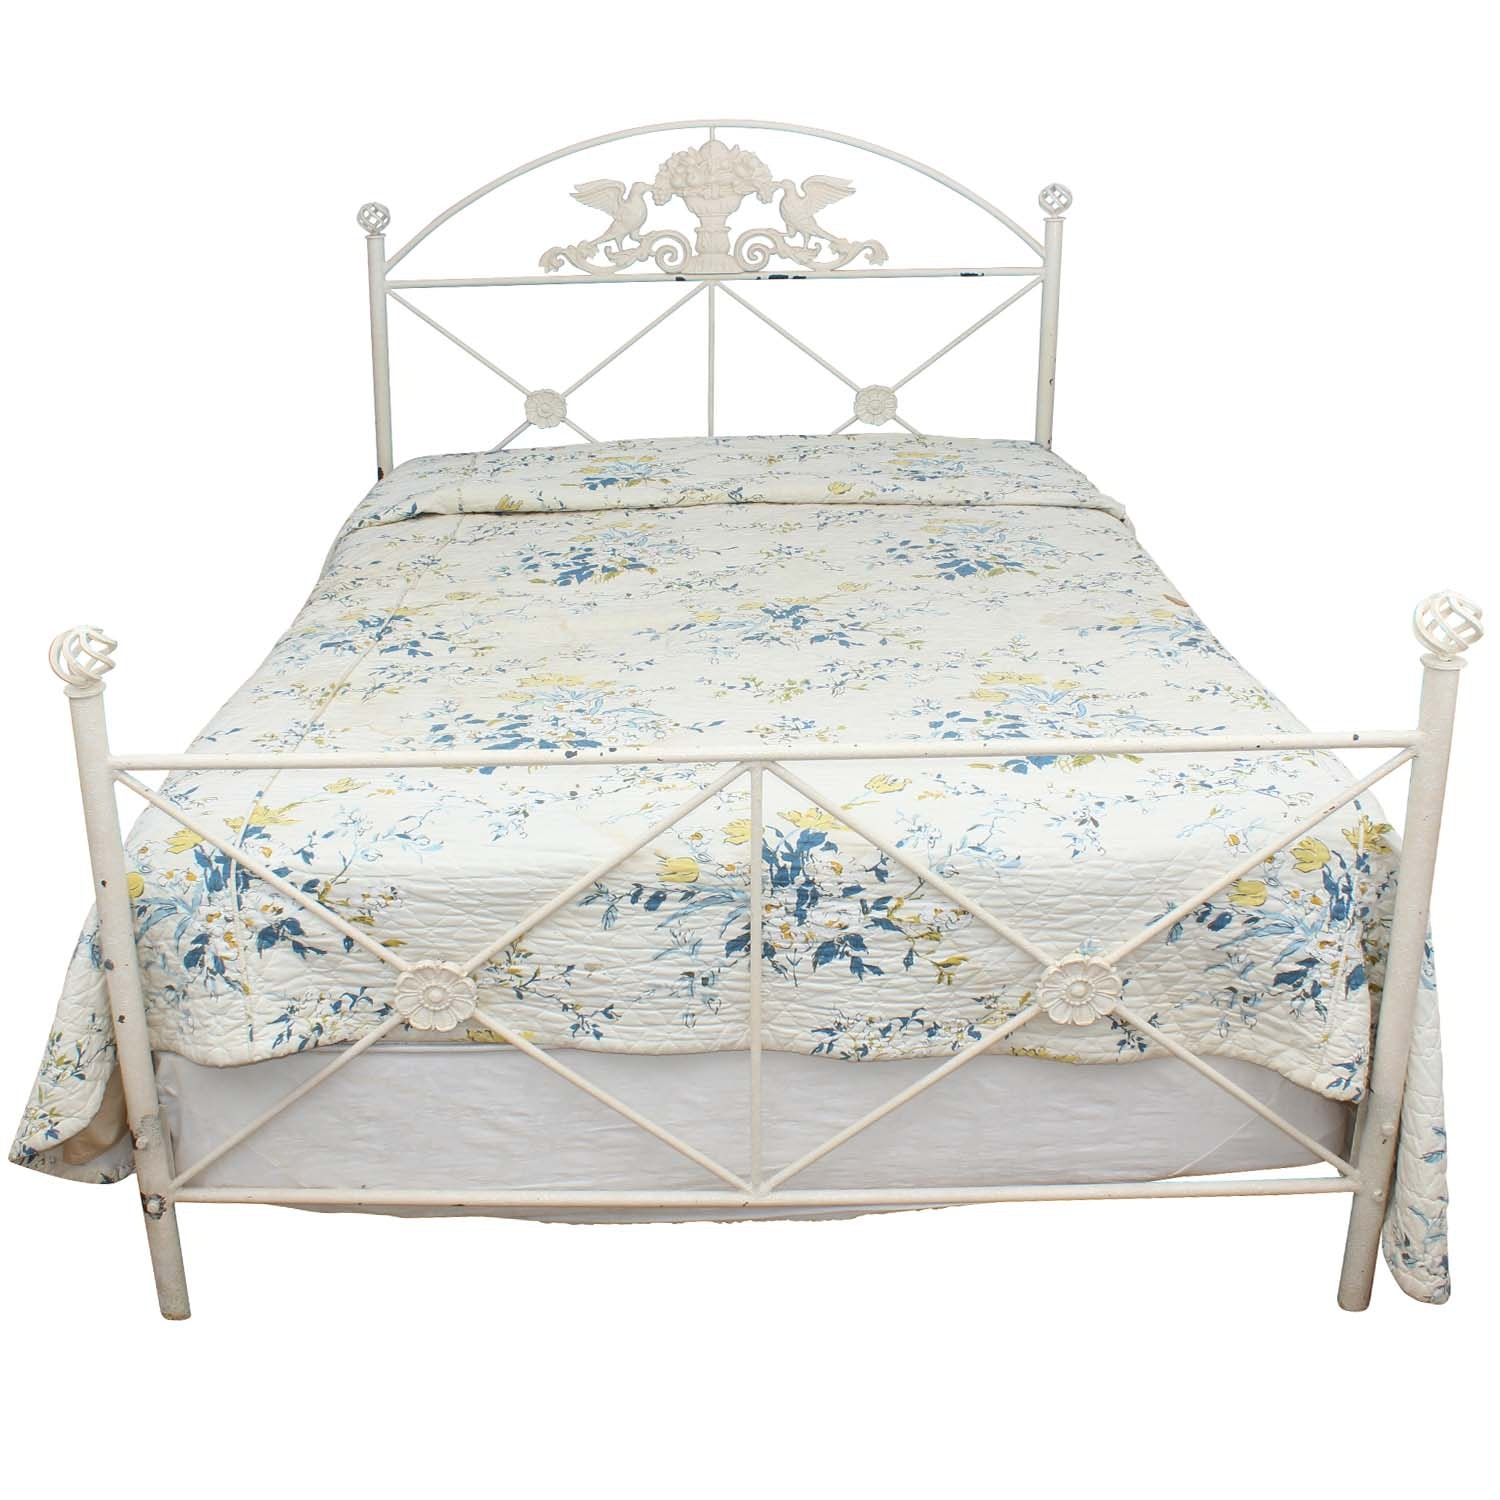 Vintage Iron Queen Size Bed Frame